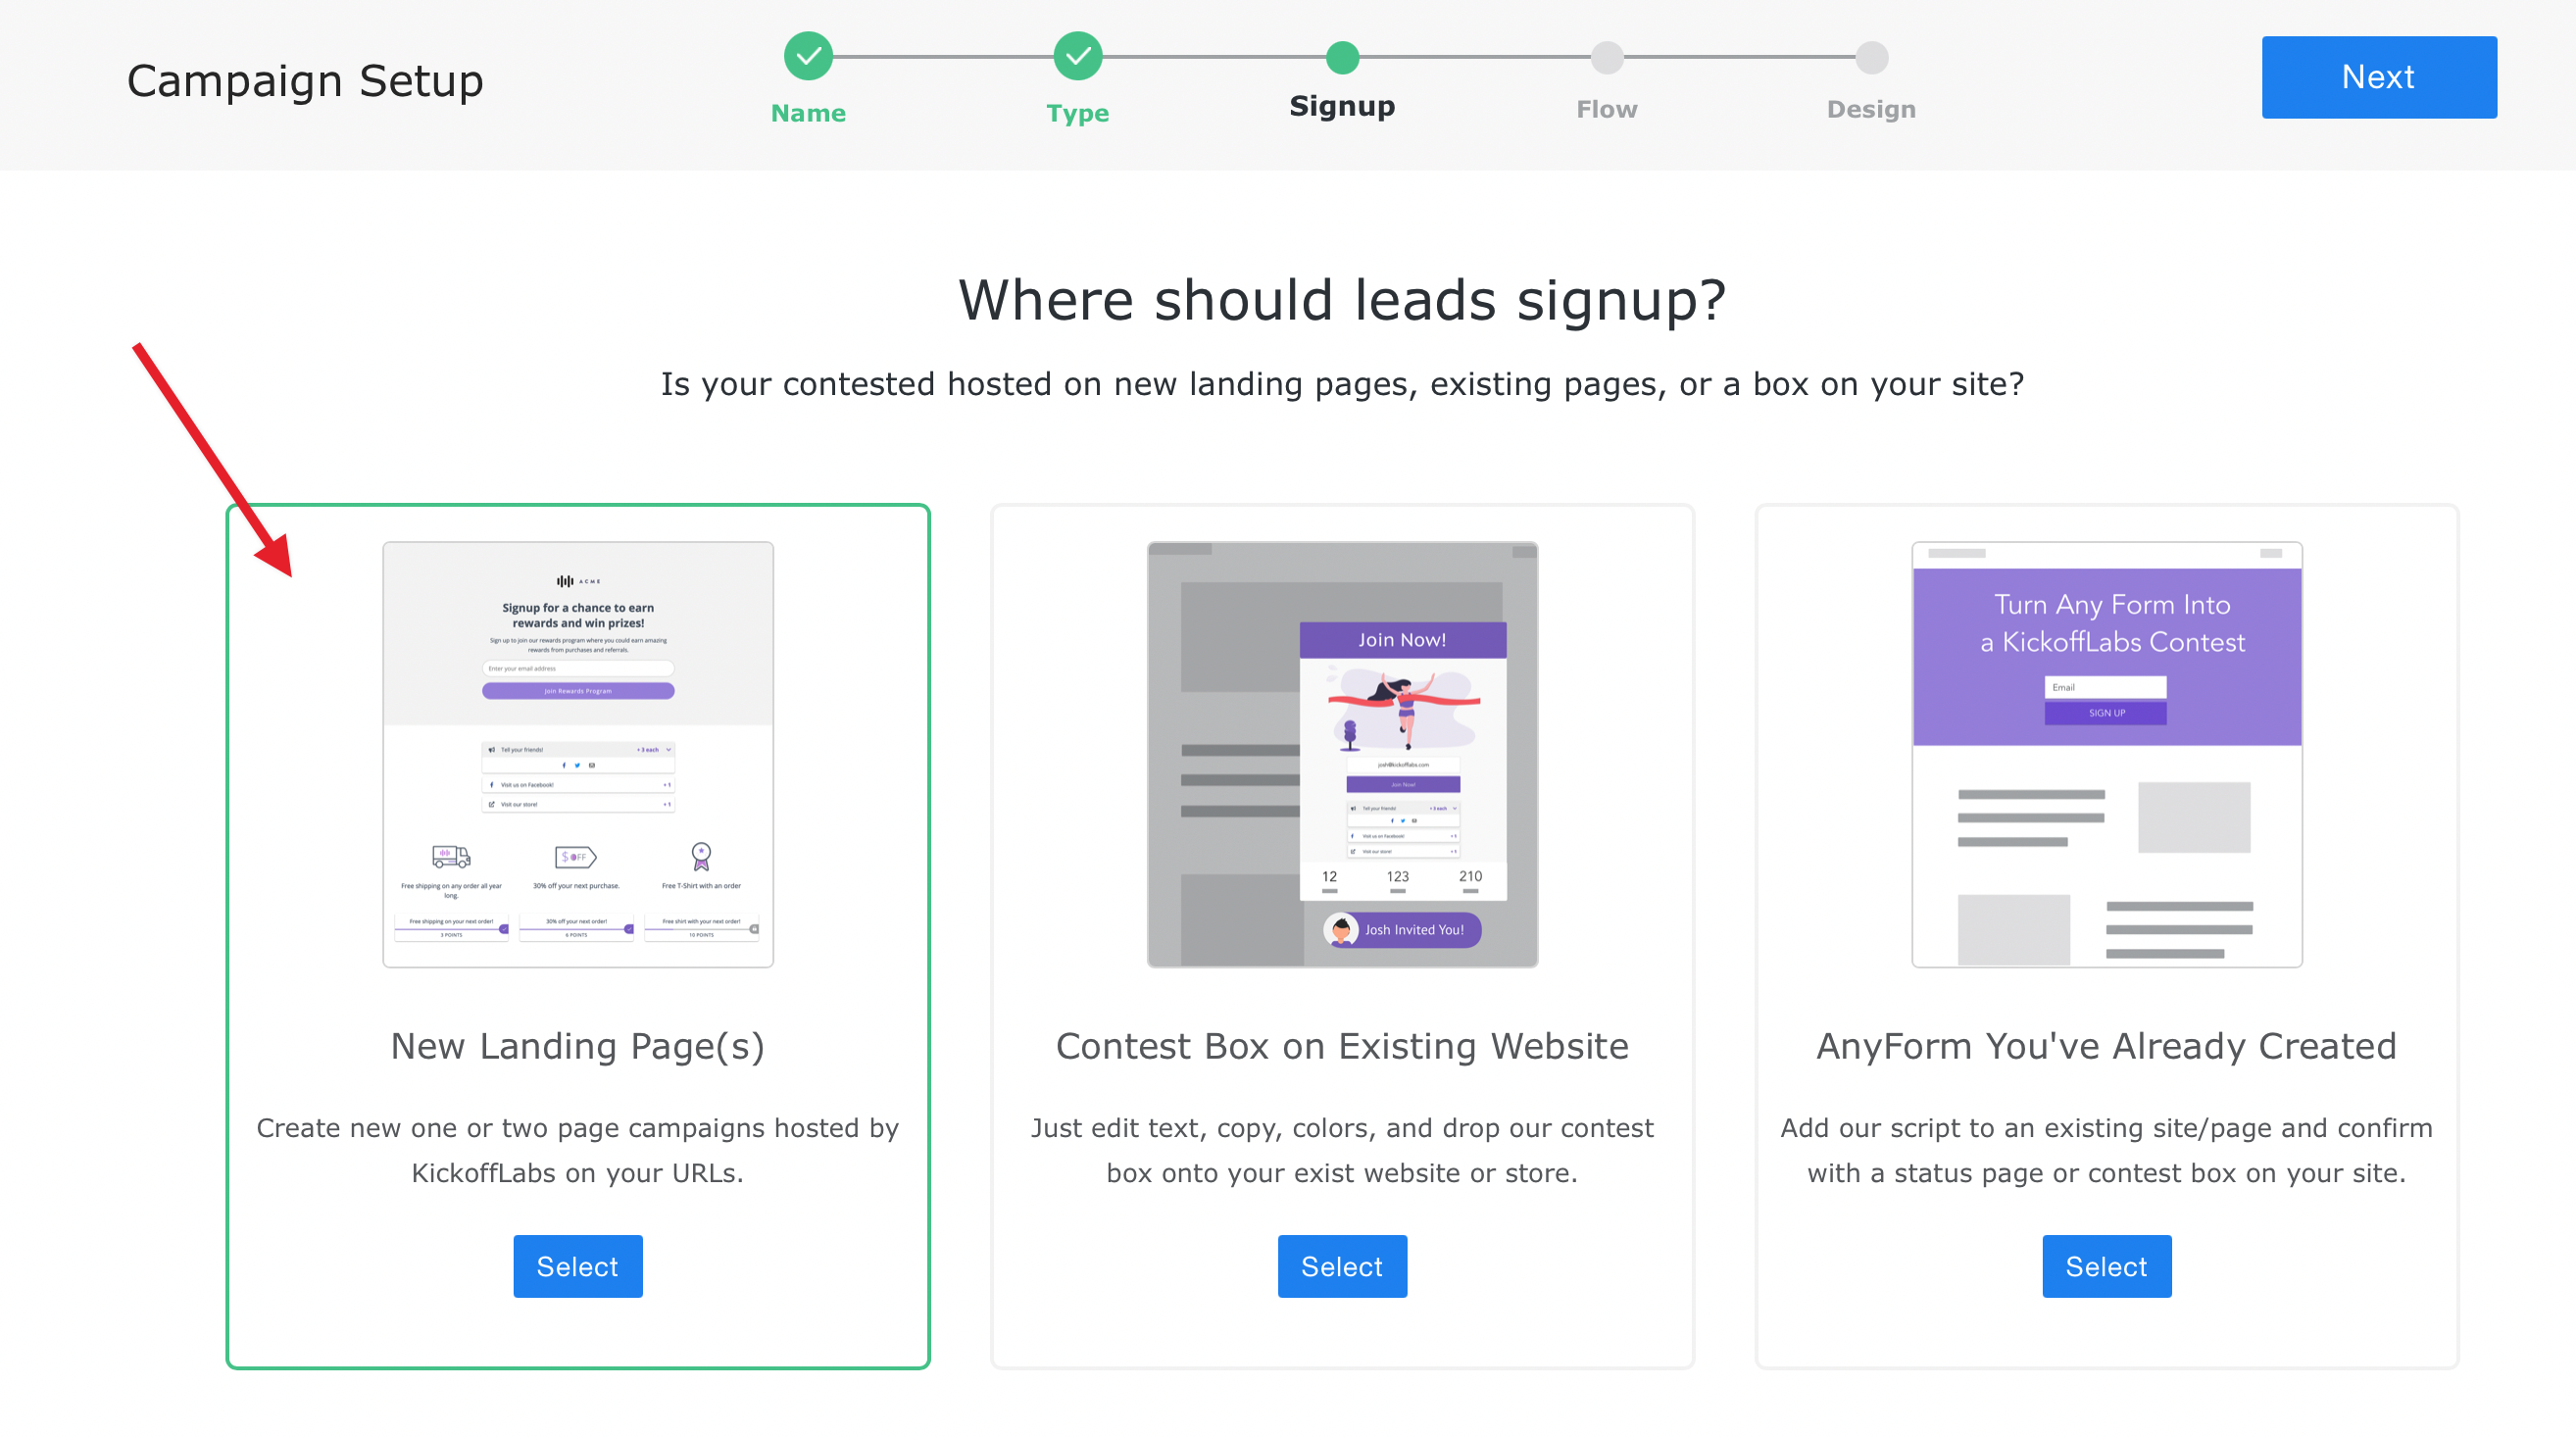 choose how lead will signup